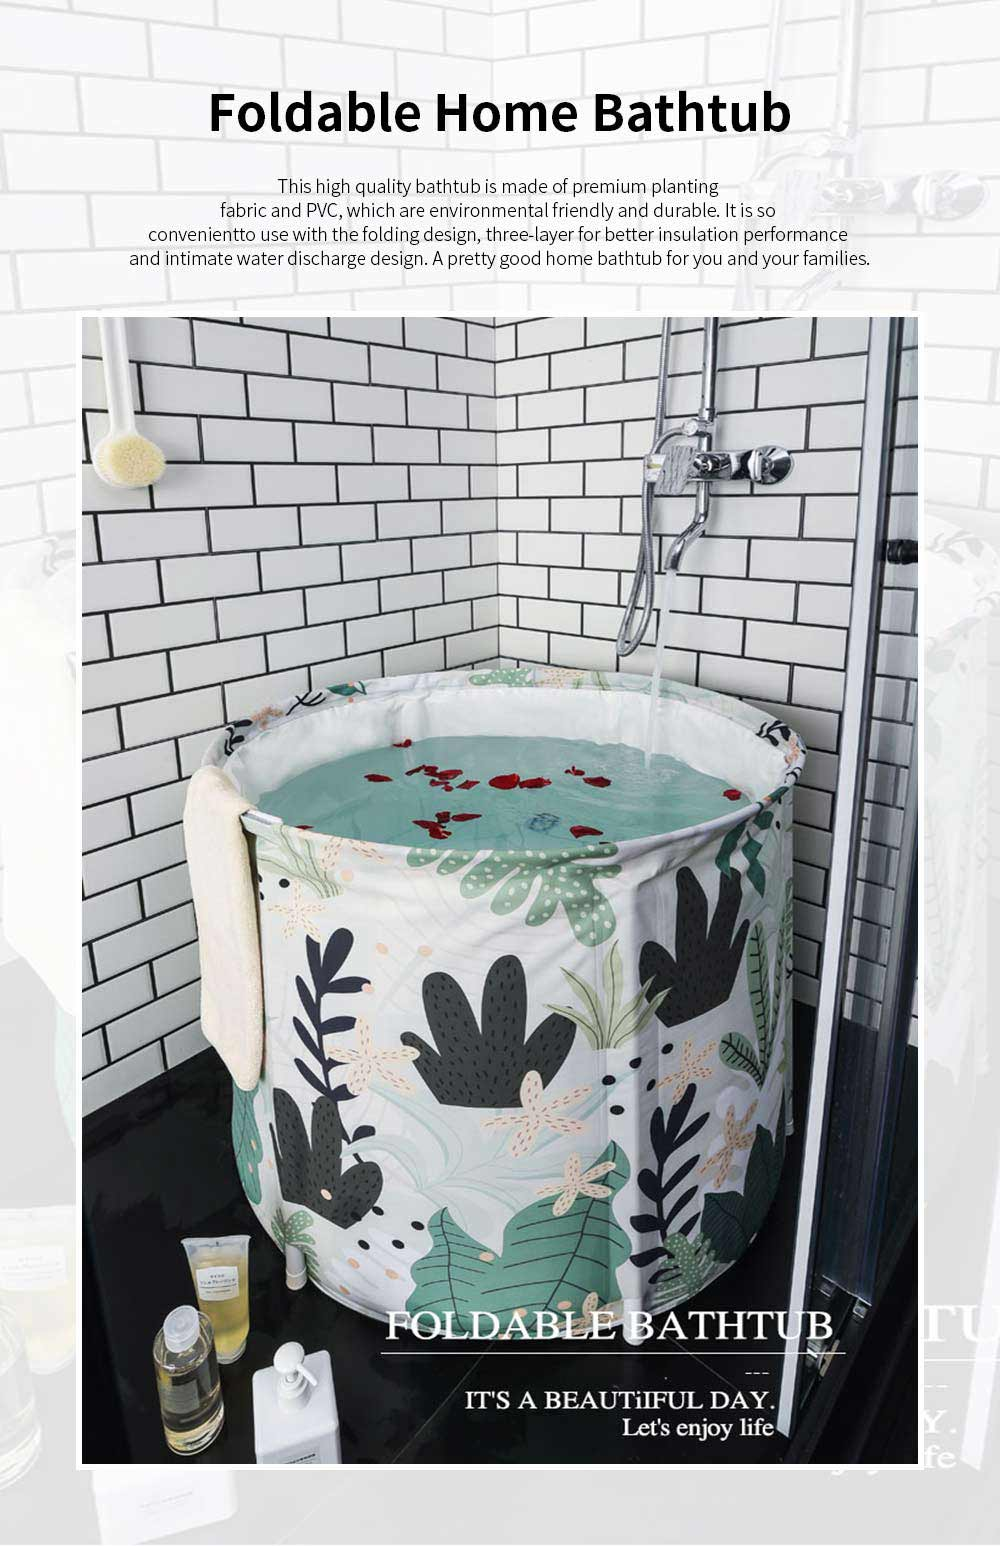 Foldable Home Bathtub Portable Thickened Body Bath Barrel with Good Insulation Performance and No Require of Inflate 0